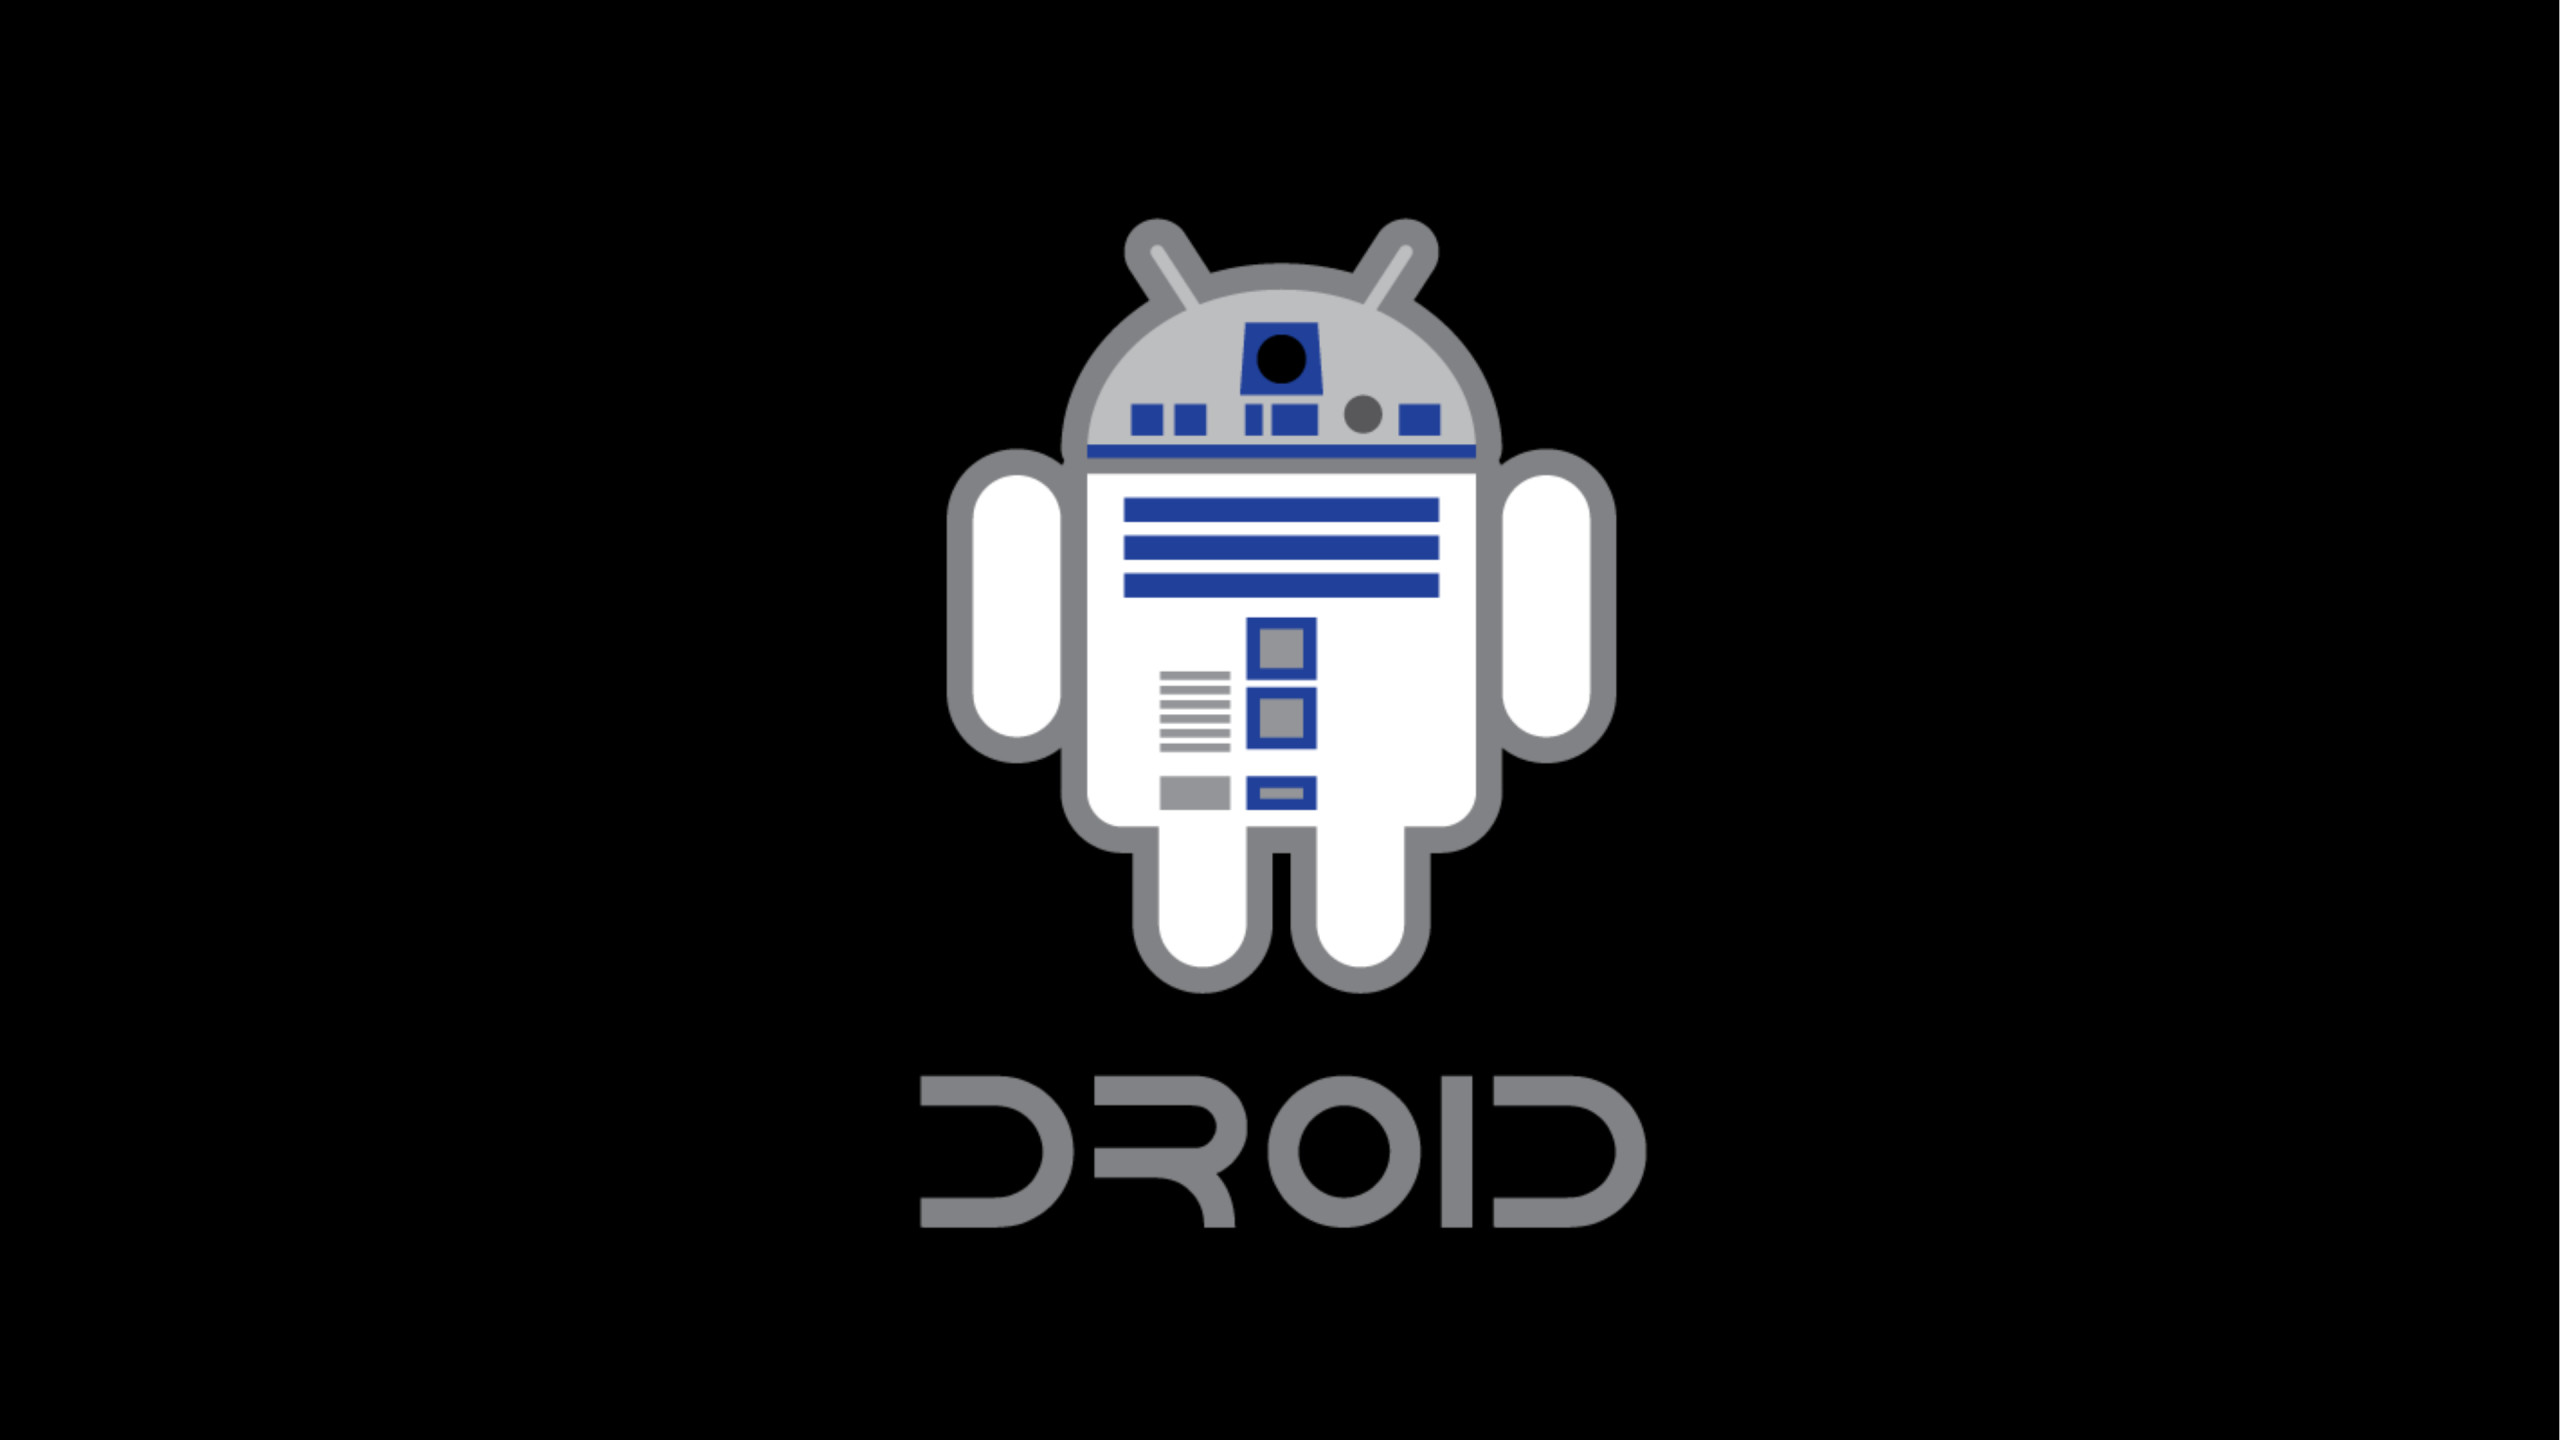 Star Wars Hd Wallpaper Phone 63 Images